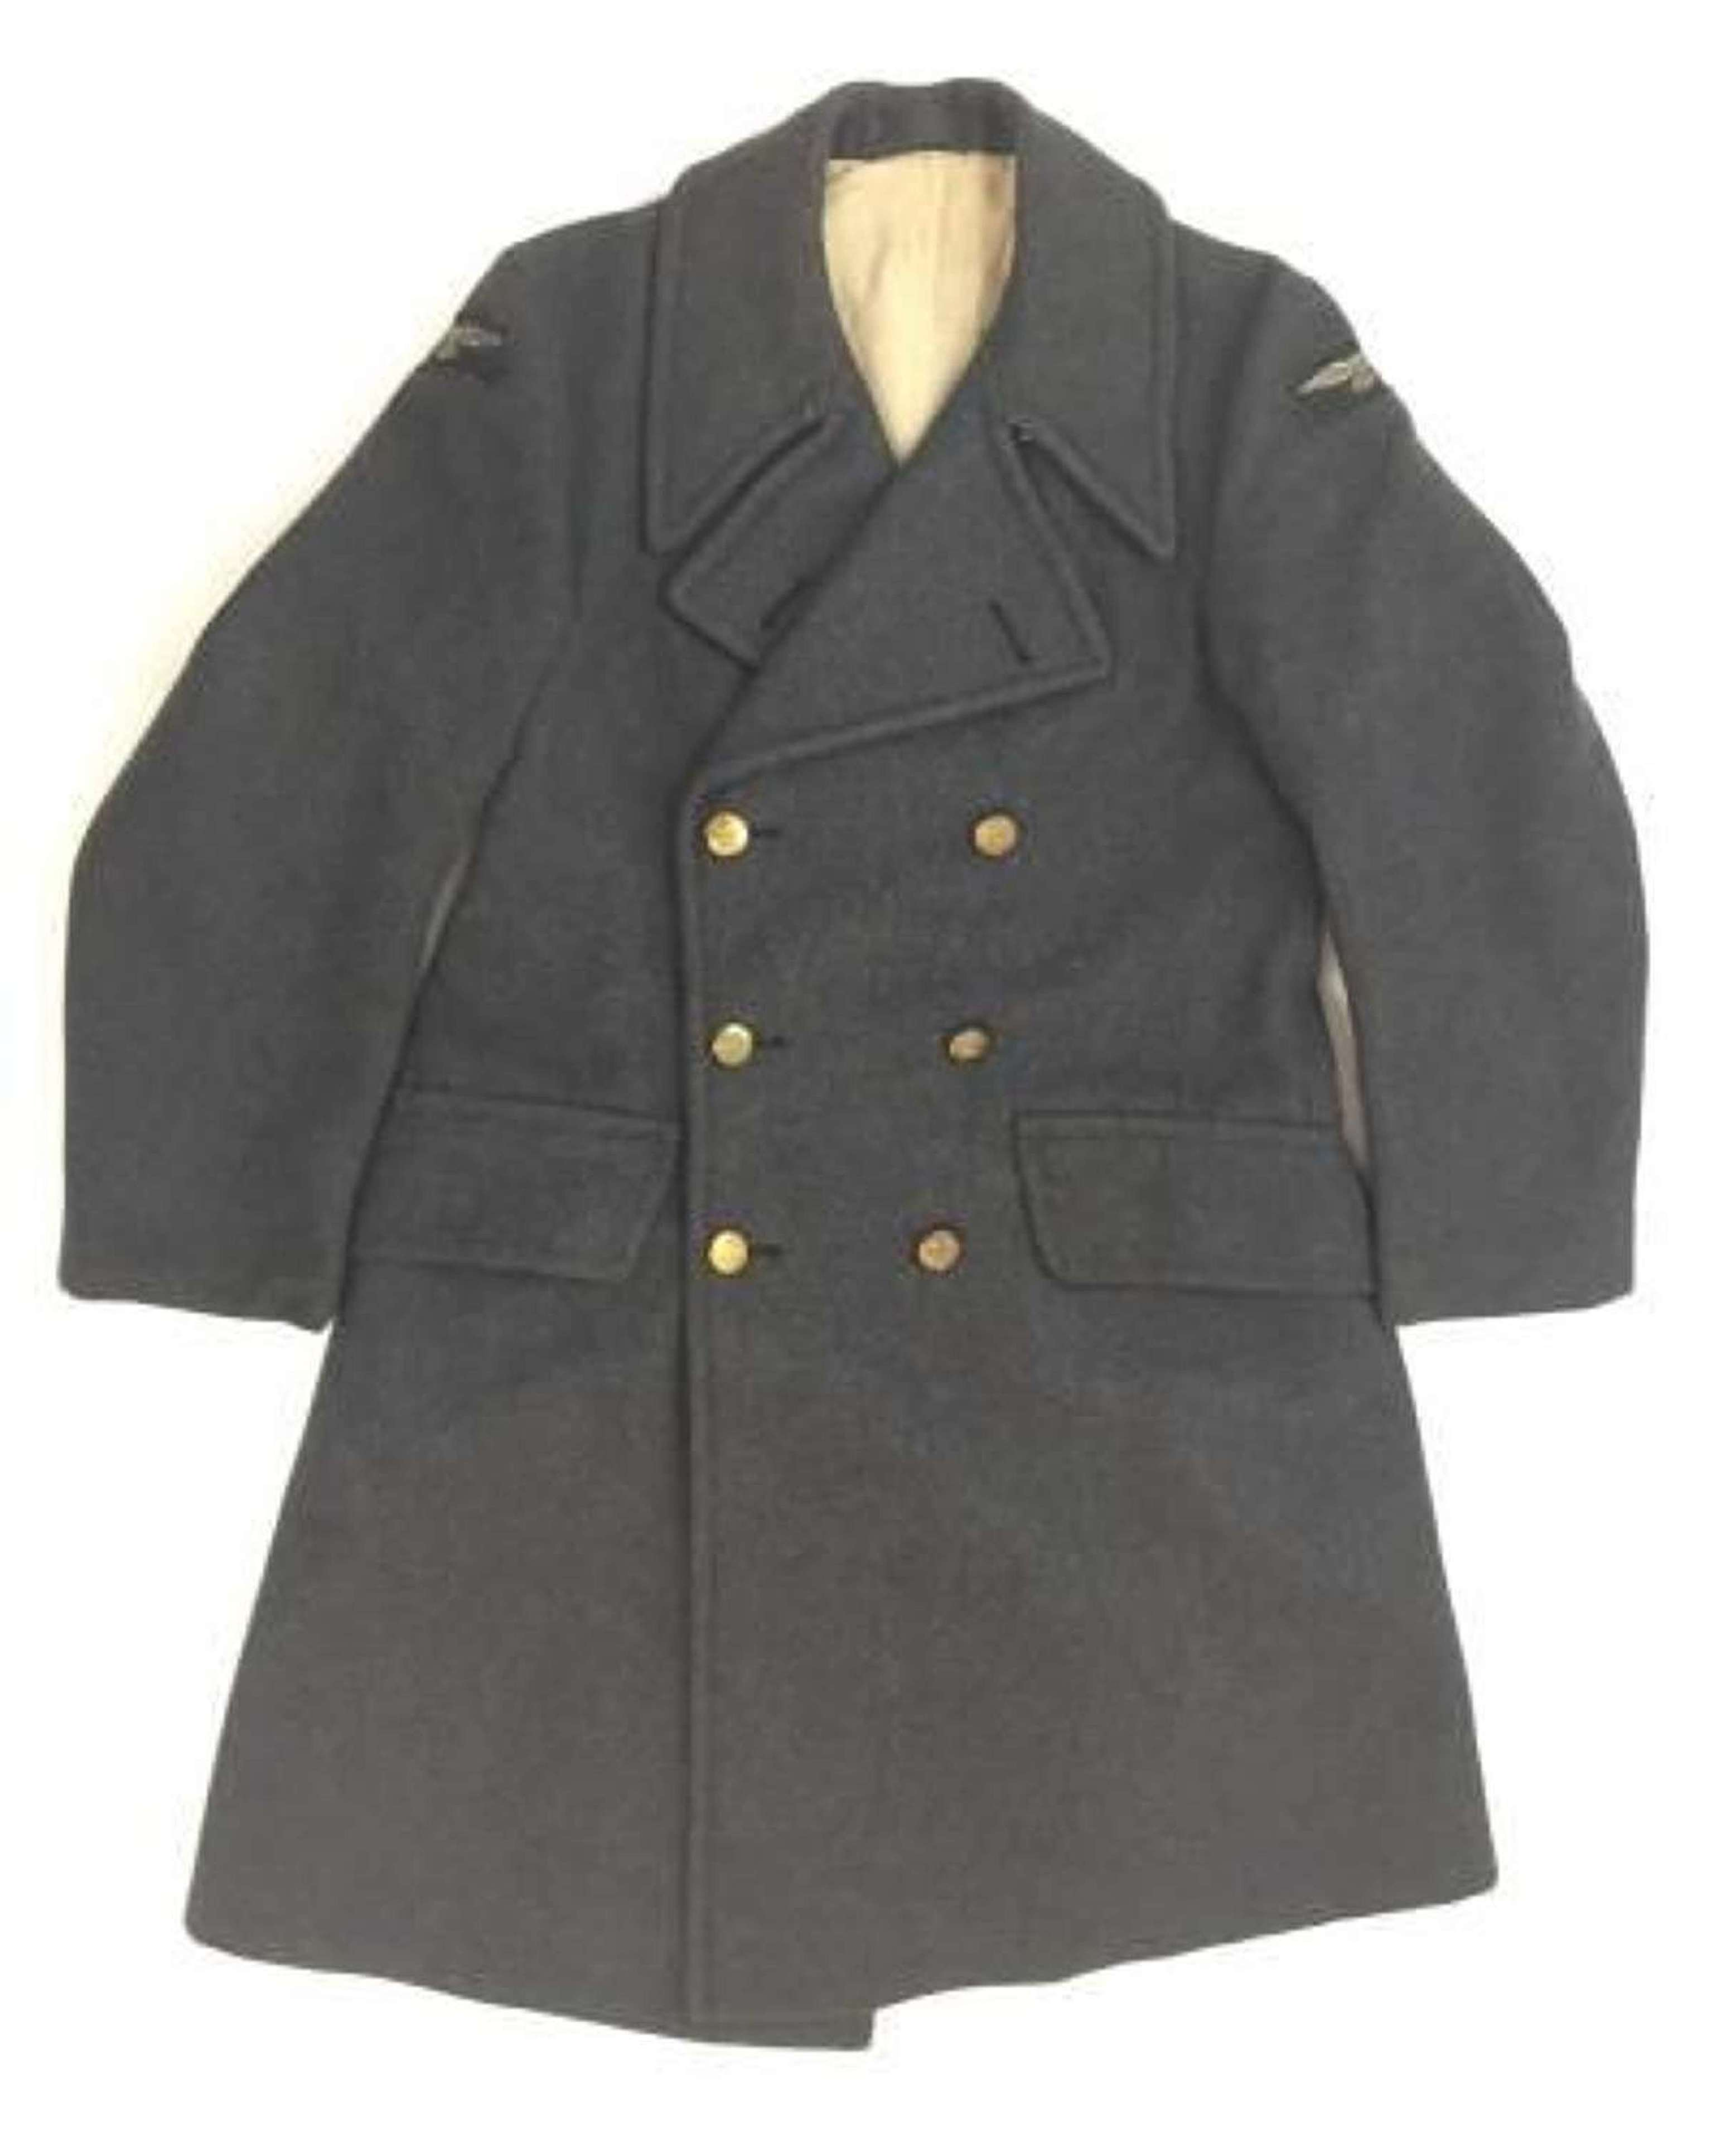 Original 1948 Dated RAF Ordinary Airman's Greatcoat - Size 2